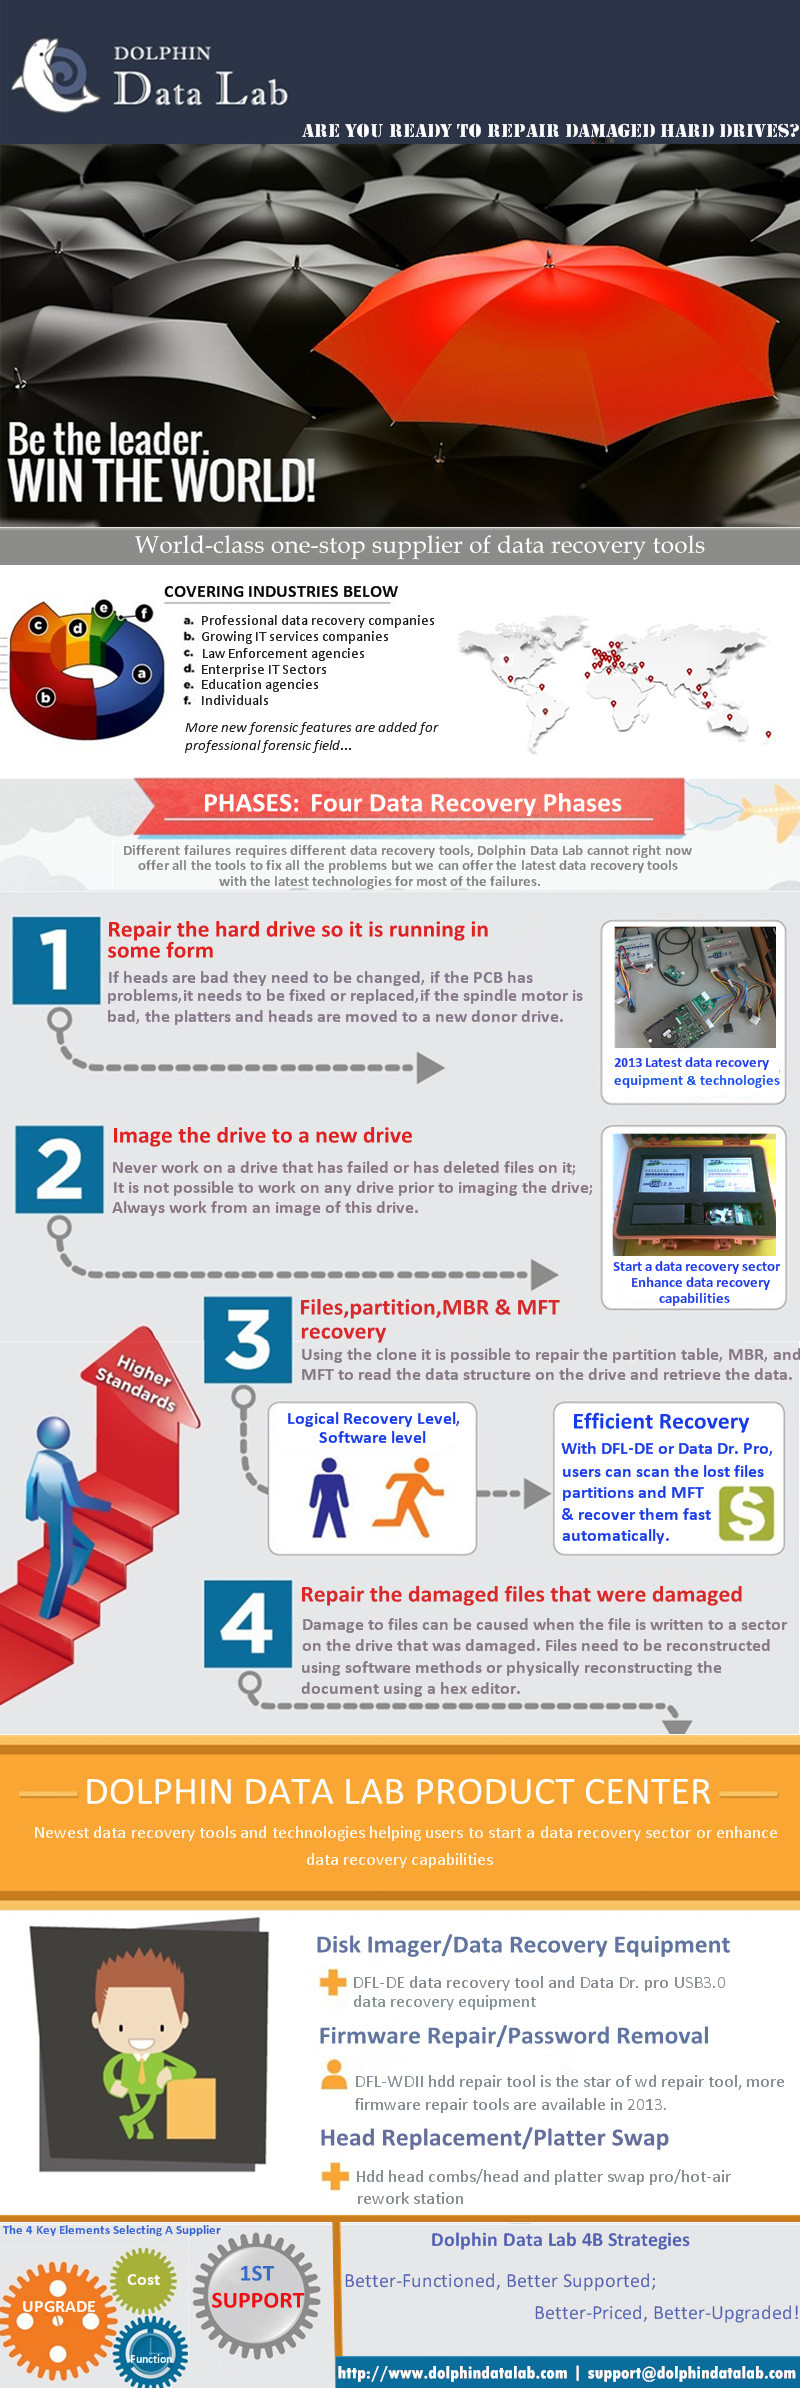 [Infographic by Dolphin Data Lab] Four Phases Of Data Recovery